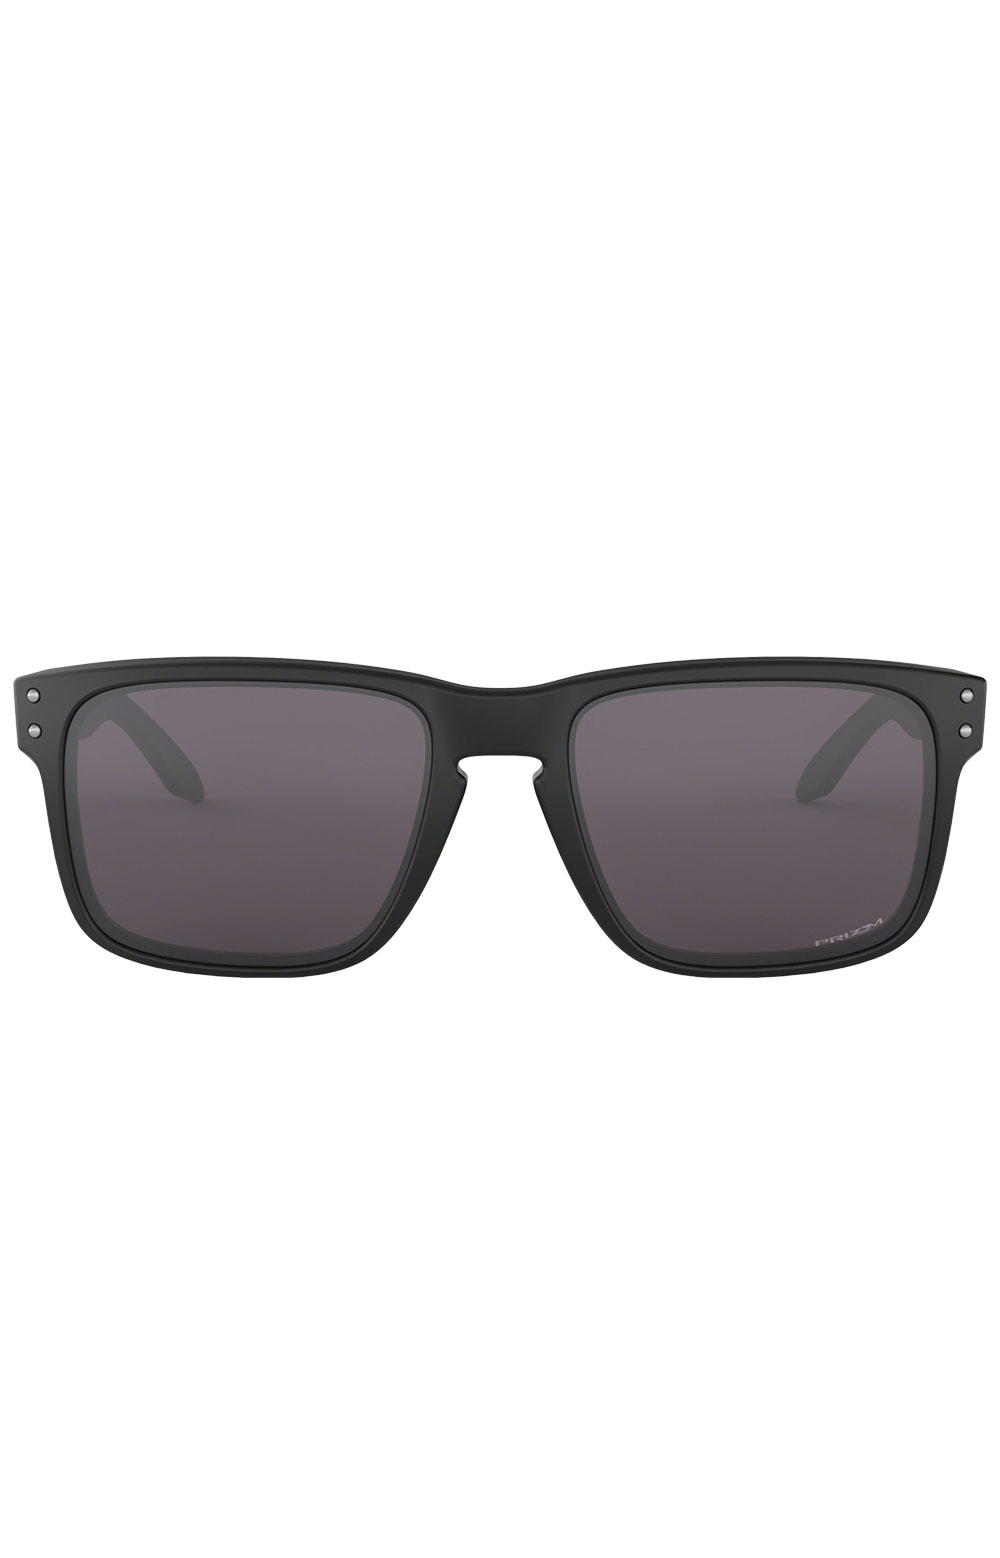 Holbrook Sunglasses - Matte Black/Prizm Grey  2